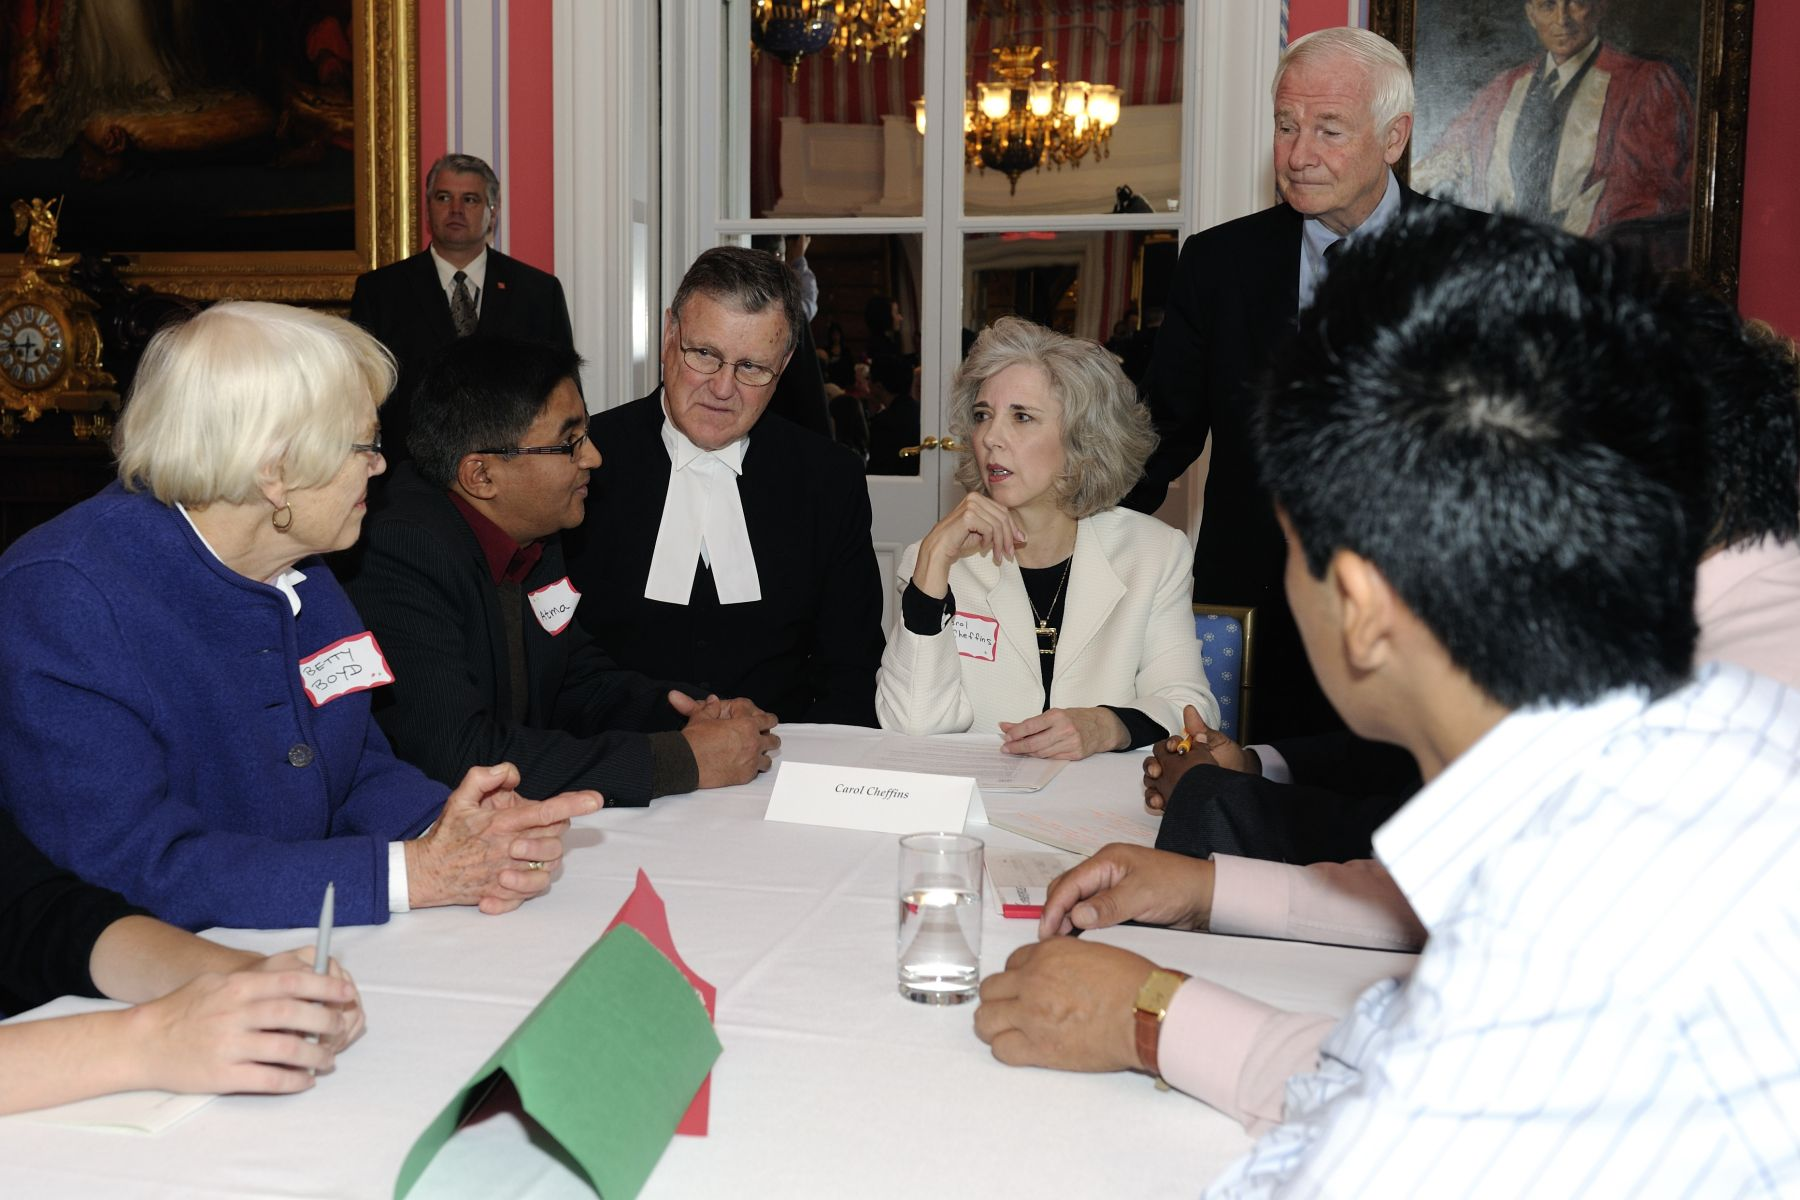 As part of Citizenship Week celebrations, a special community round table discussion with 54 new Canadians will take place at Rideau Hall. These unique discussions aim to strengthen the connection between new Canadians and their communities. This event is done in partnership with the Institute for Canadian Citizenship, and Citizenship and Immigration Canada.